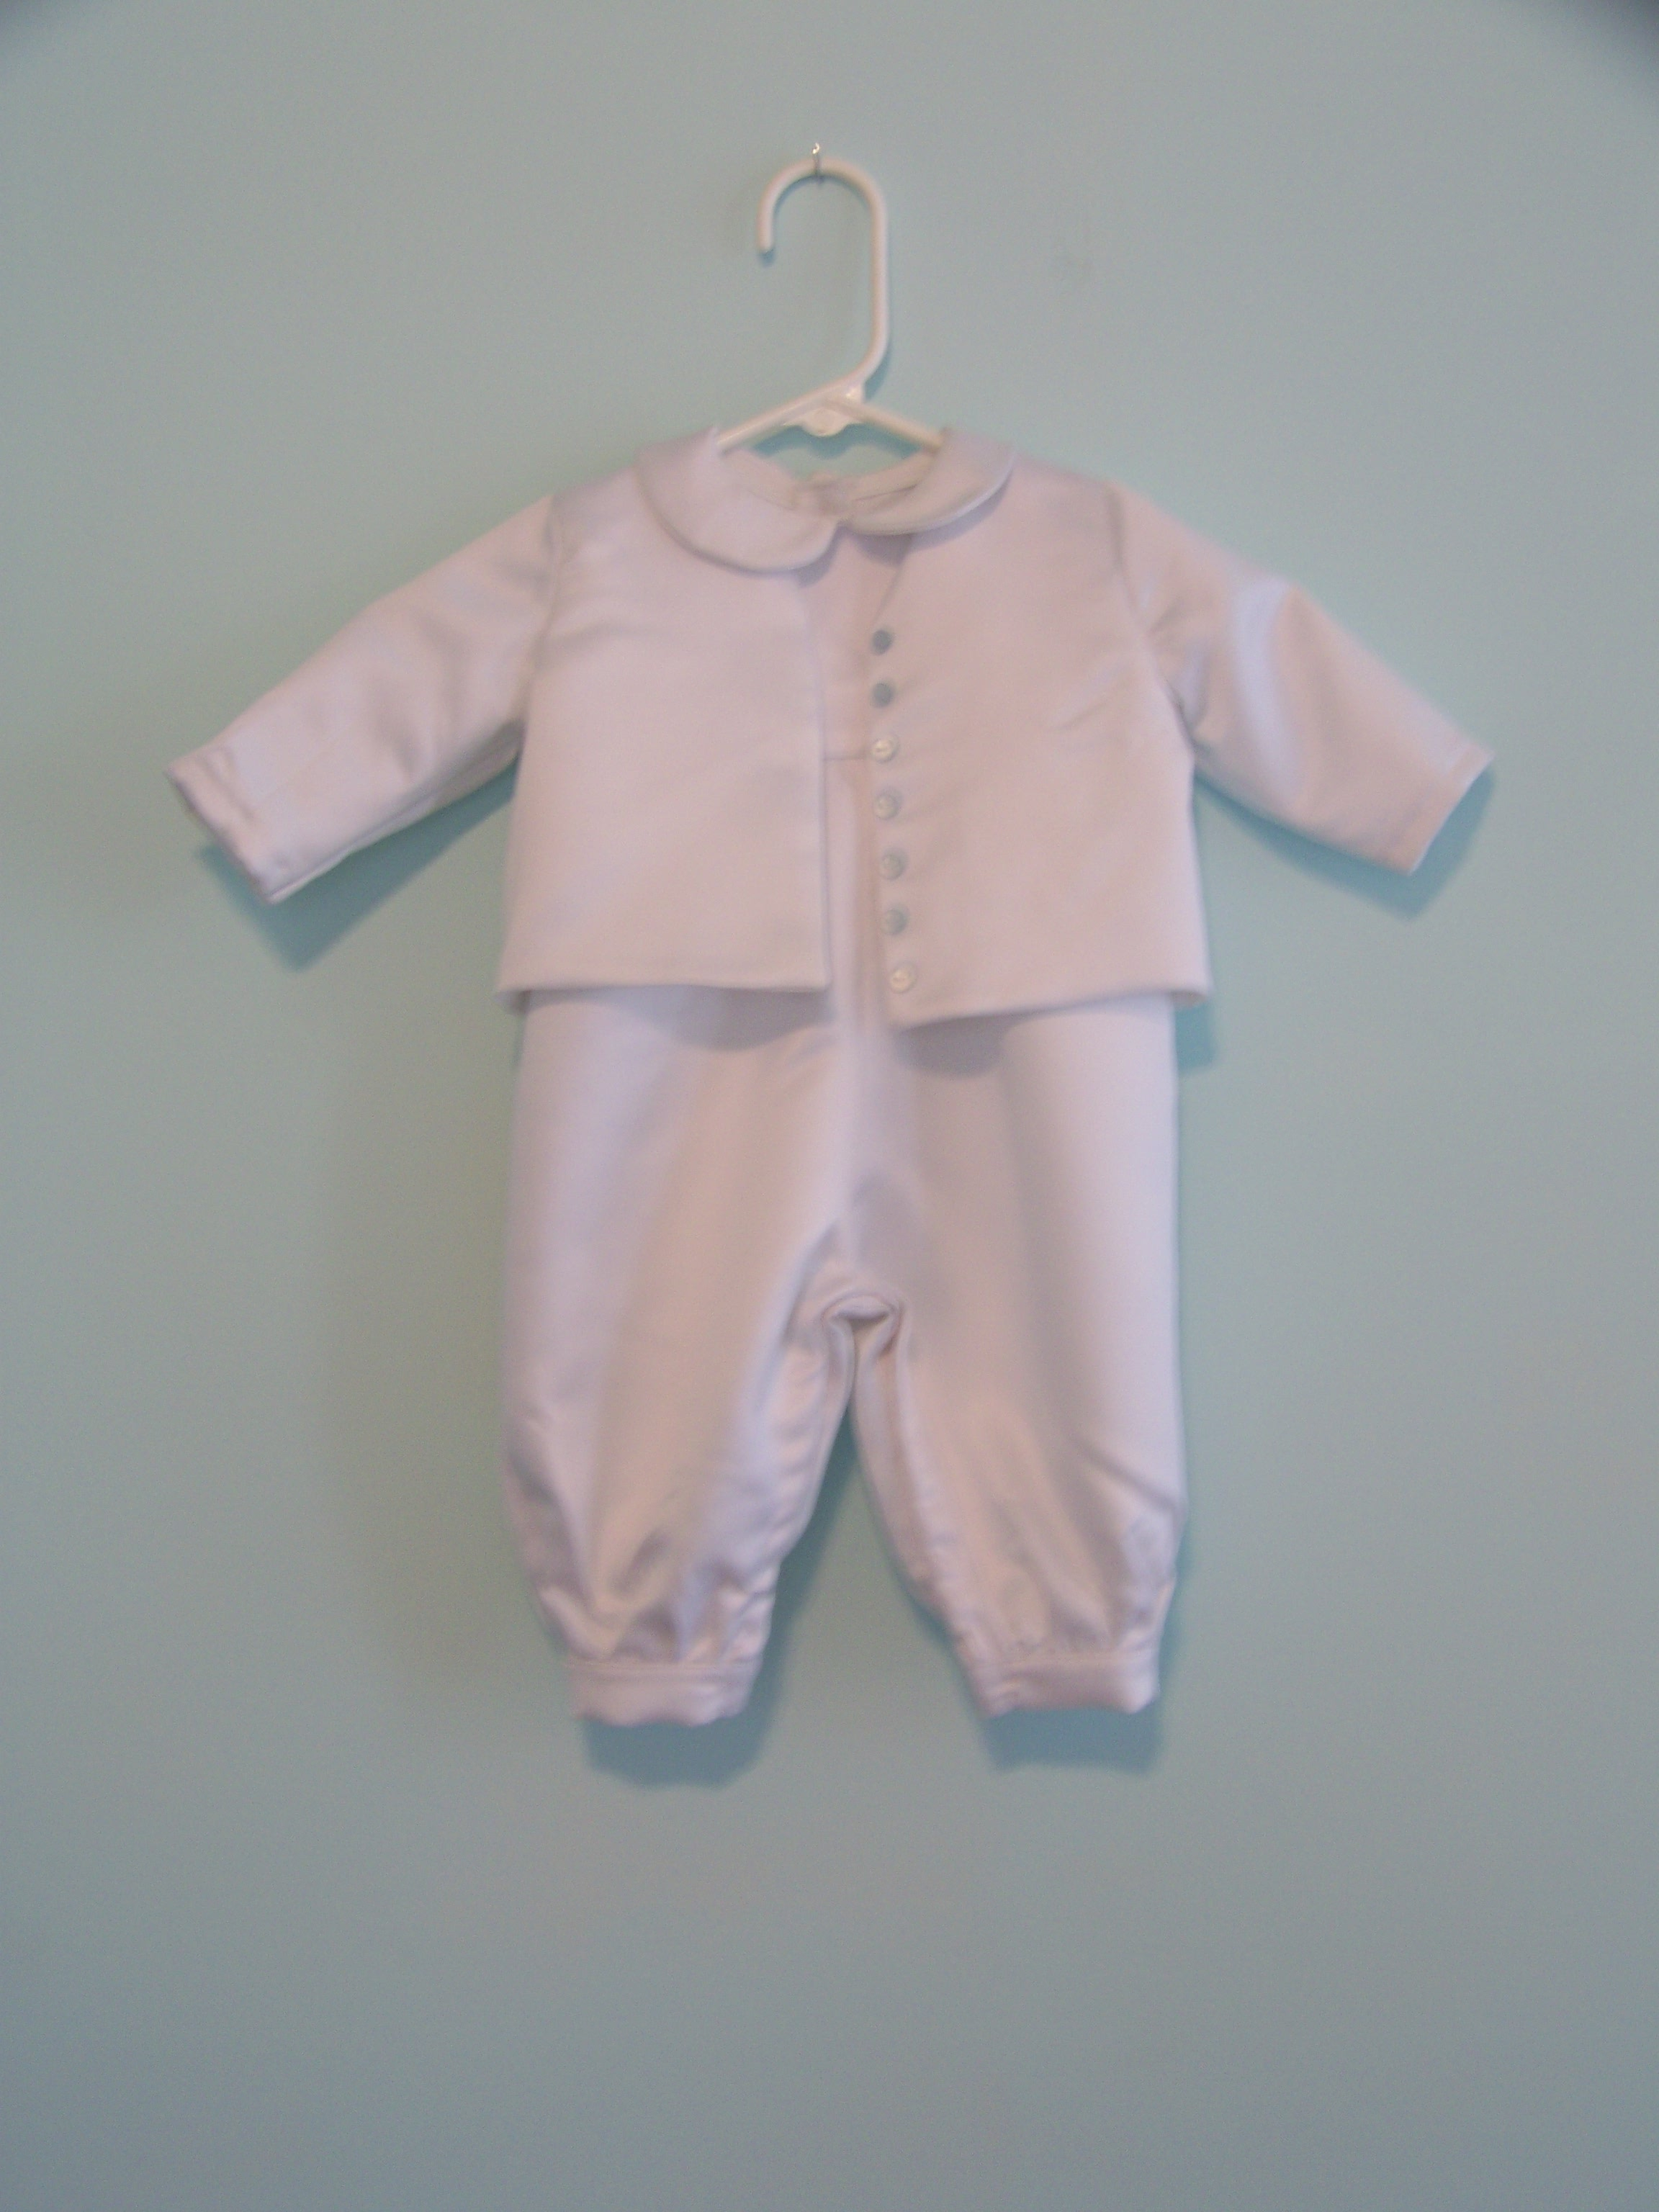 Baby Boy Christening Outfit Sewing Projects Burdastyle Com